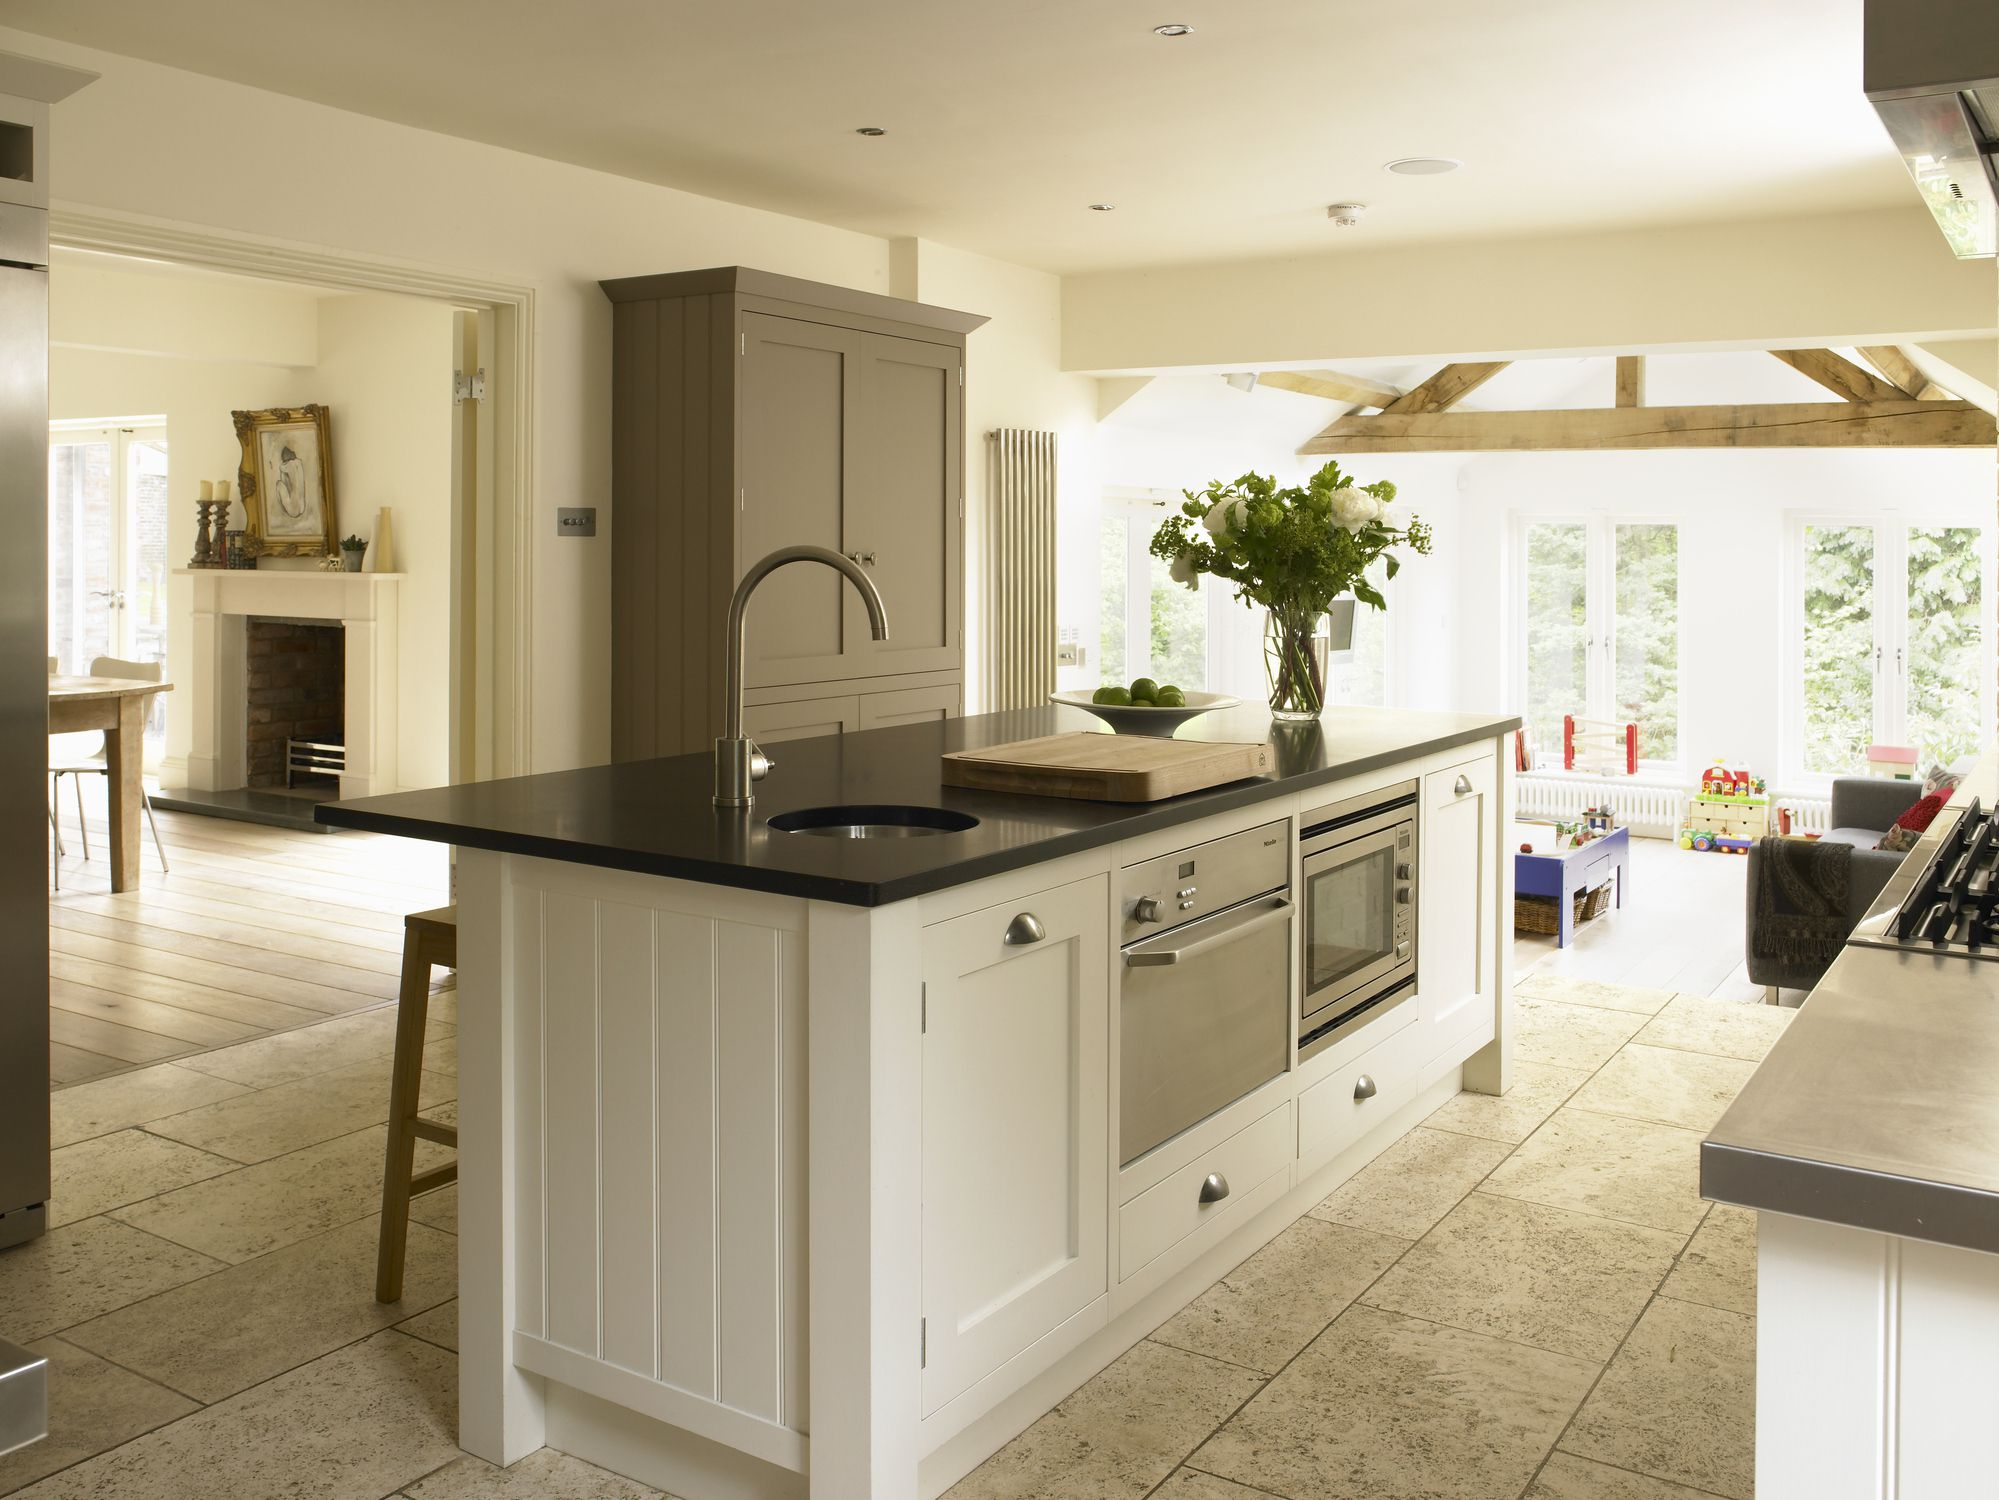 Low Maintenance, No Hassle, Kitchen Flooring Options